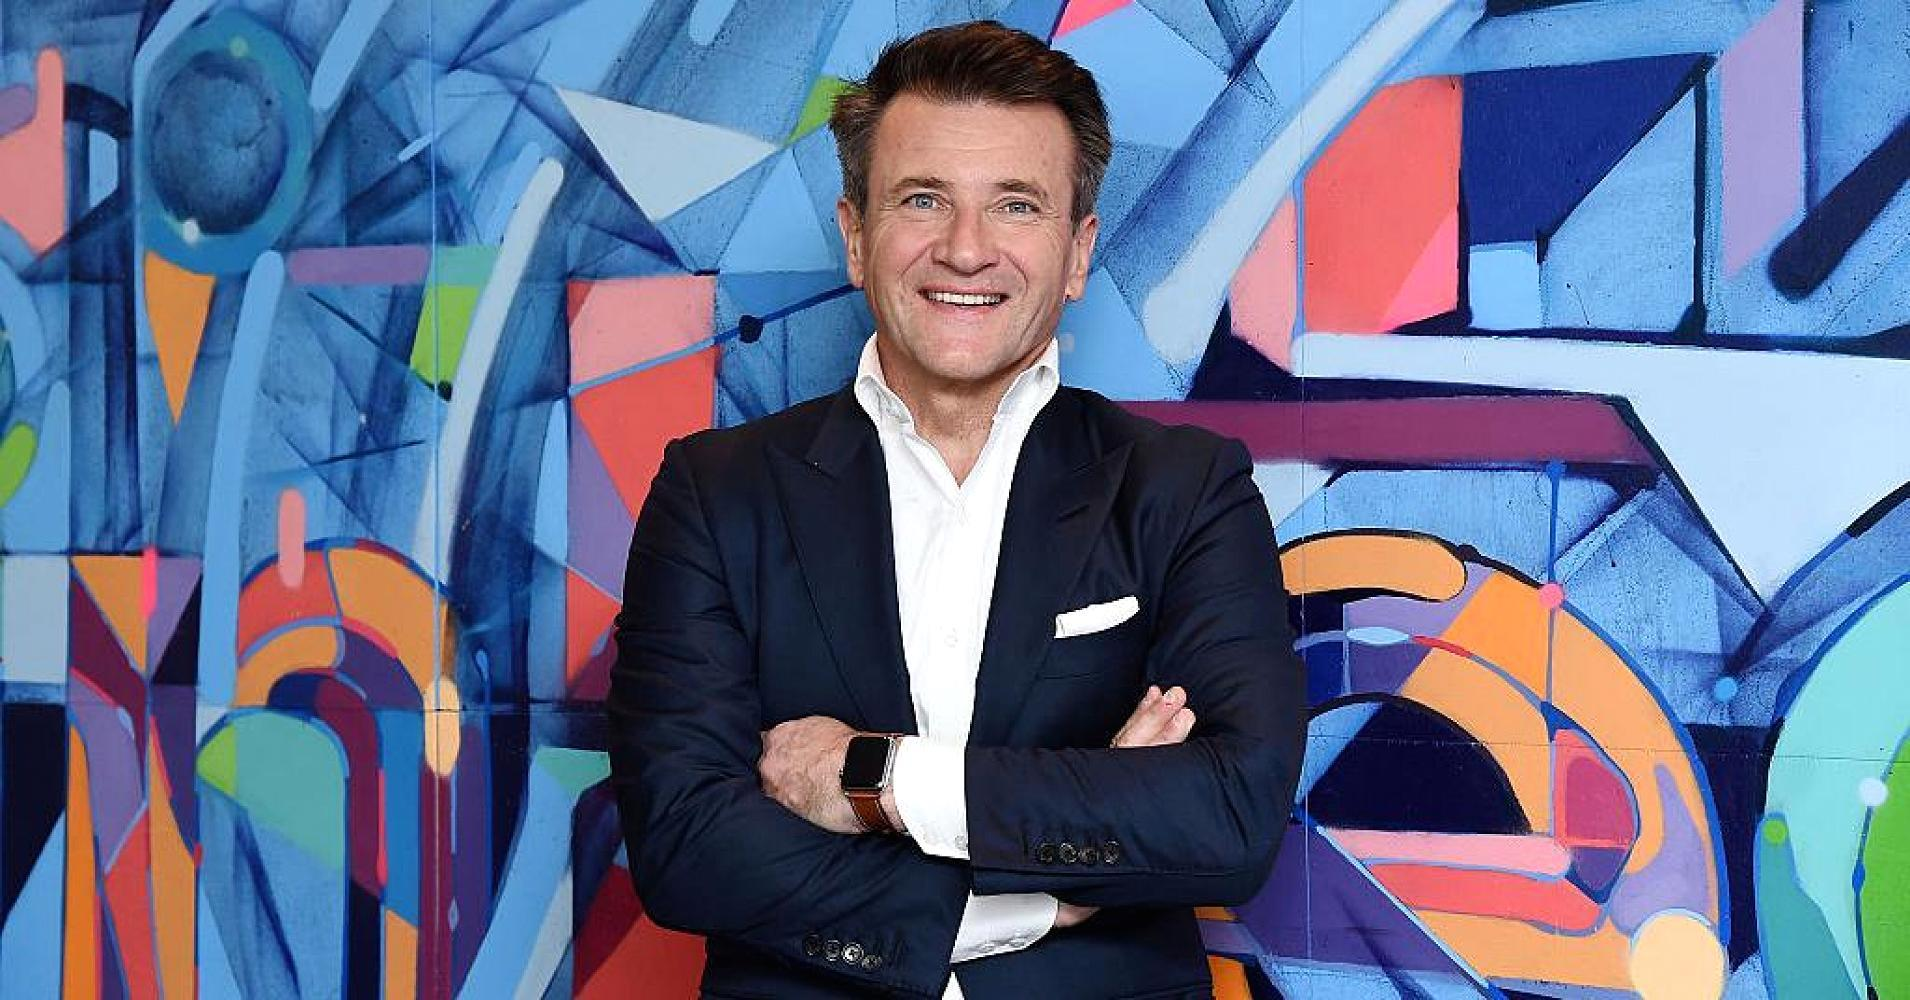 'Shark Tank' investor Robert Herjavec: 10 reasons why most businesses fail